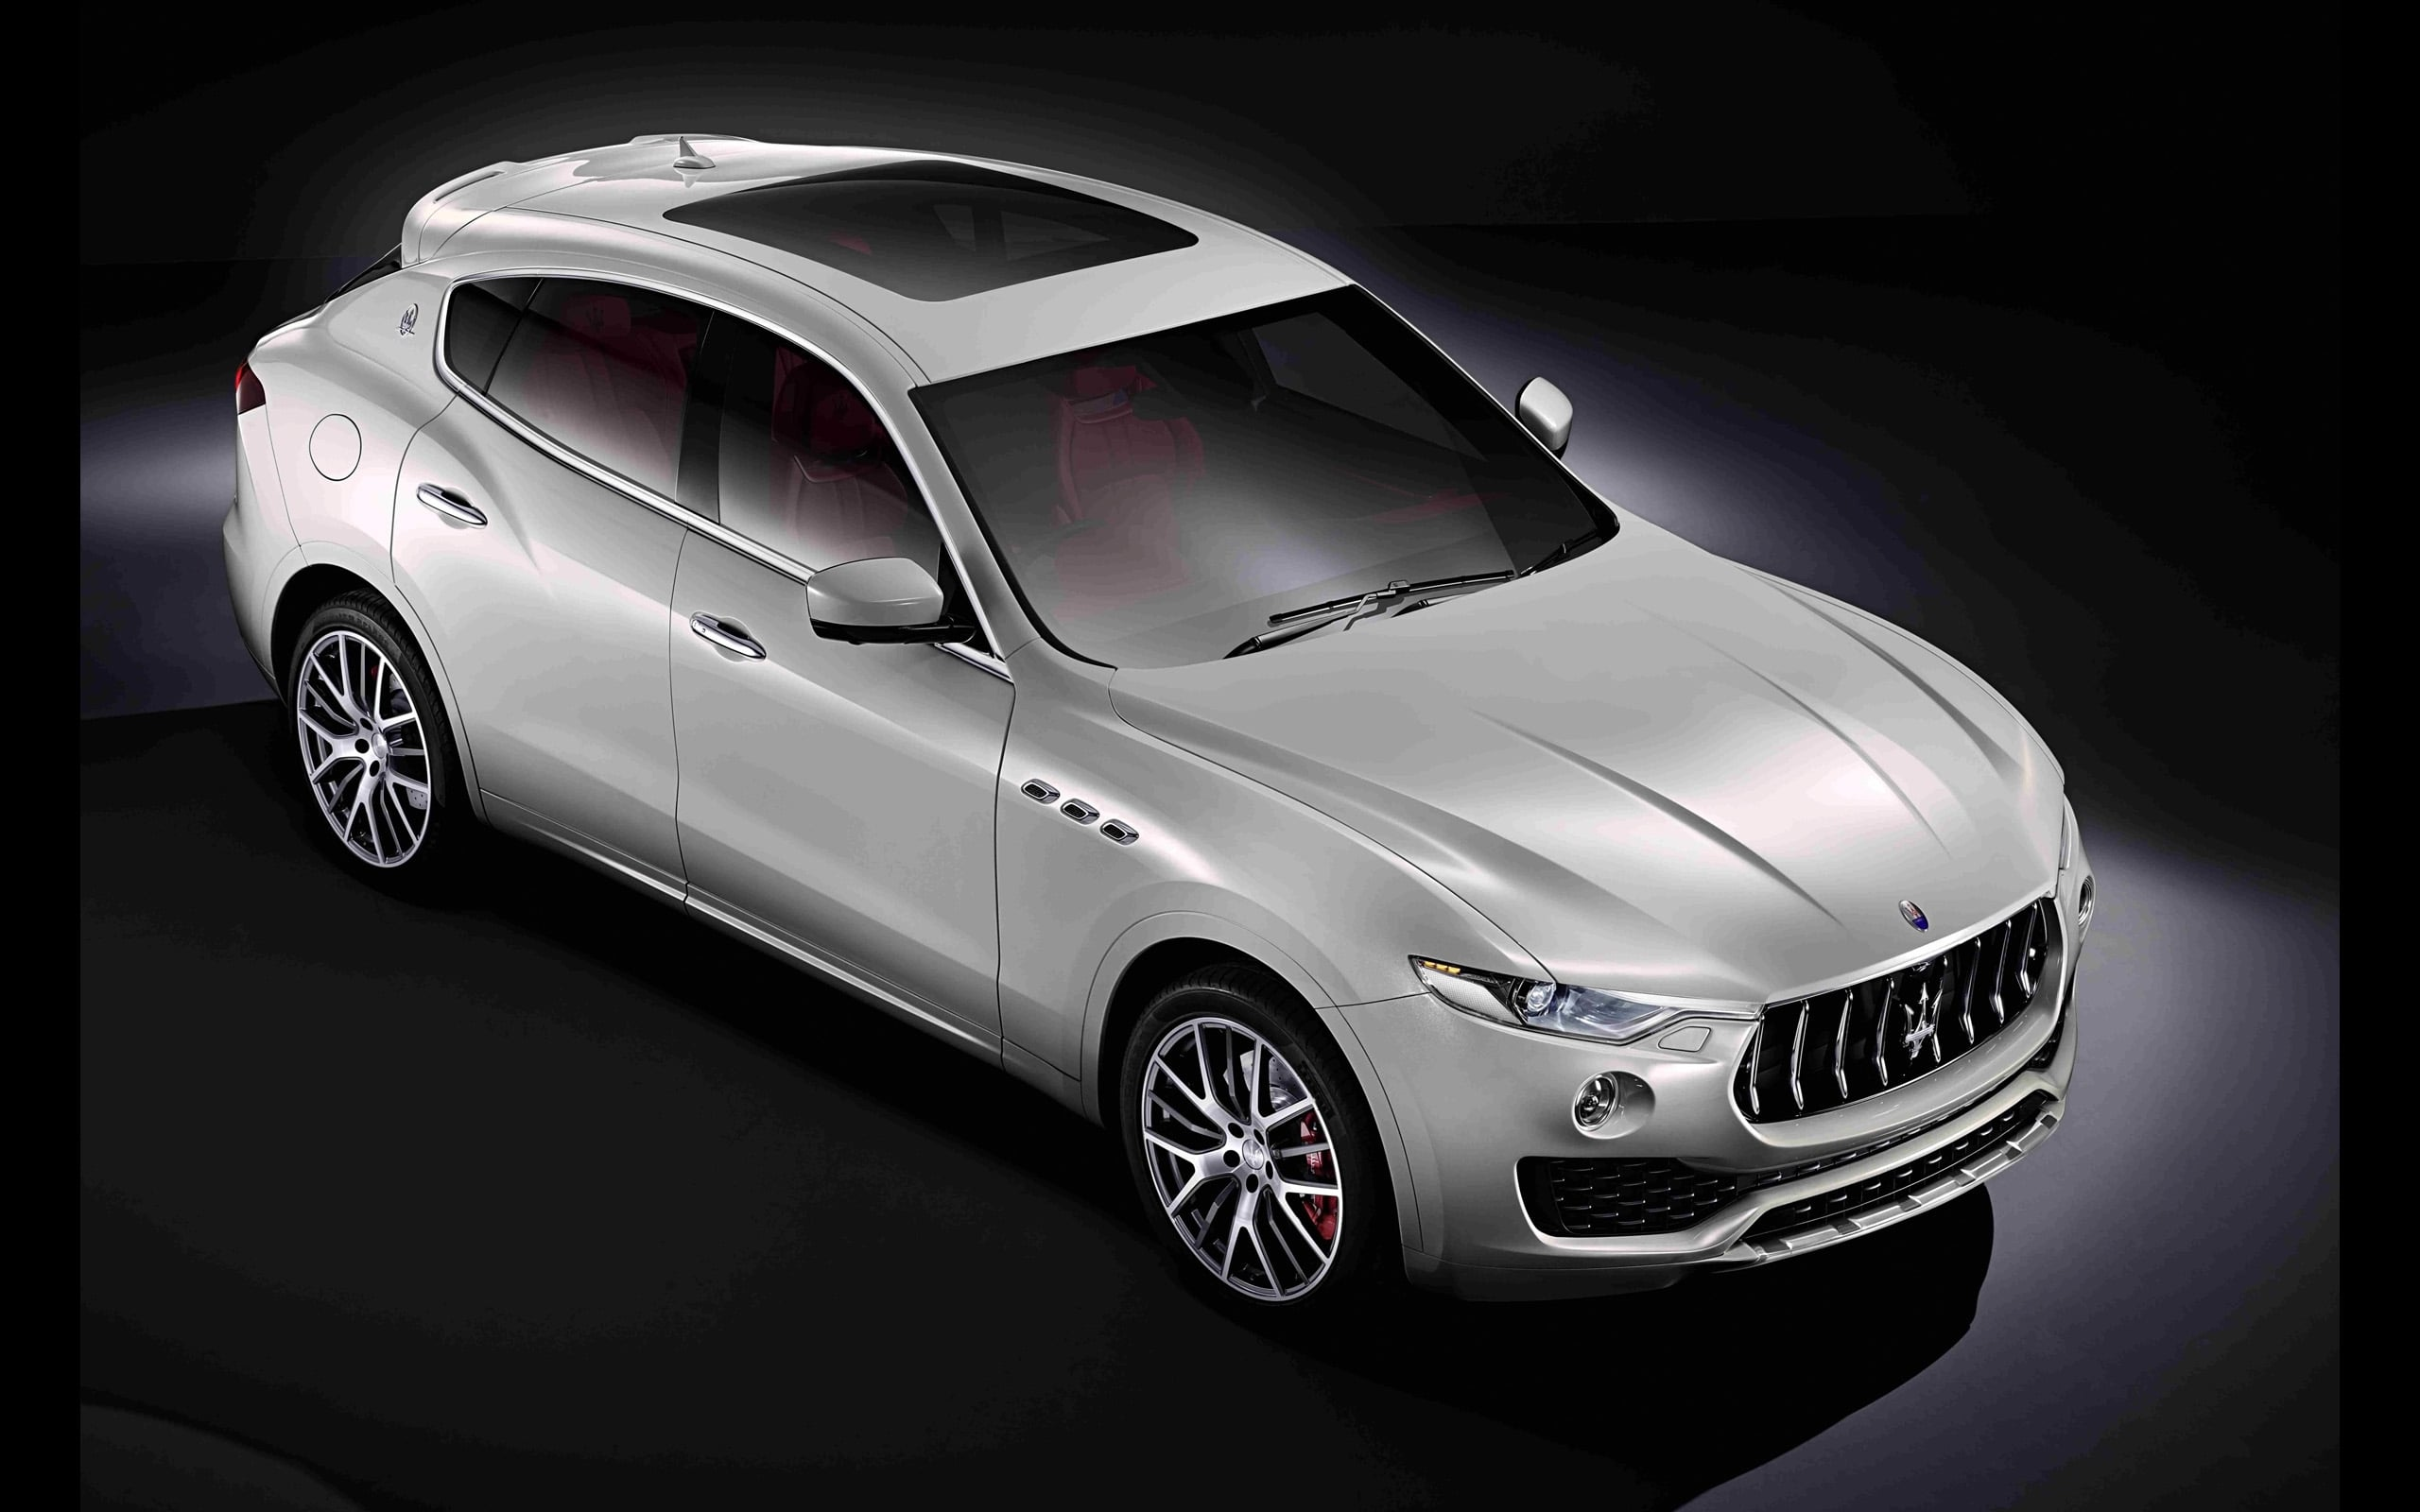 Download 4k Wallpapers Of Cars 2016 Maserati Levante Hd Wallpapers High Quality